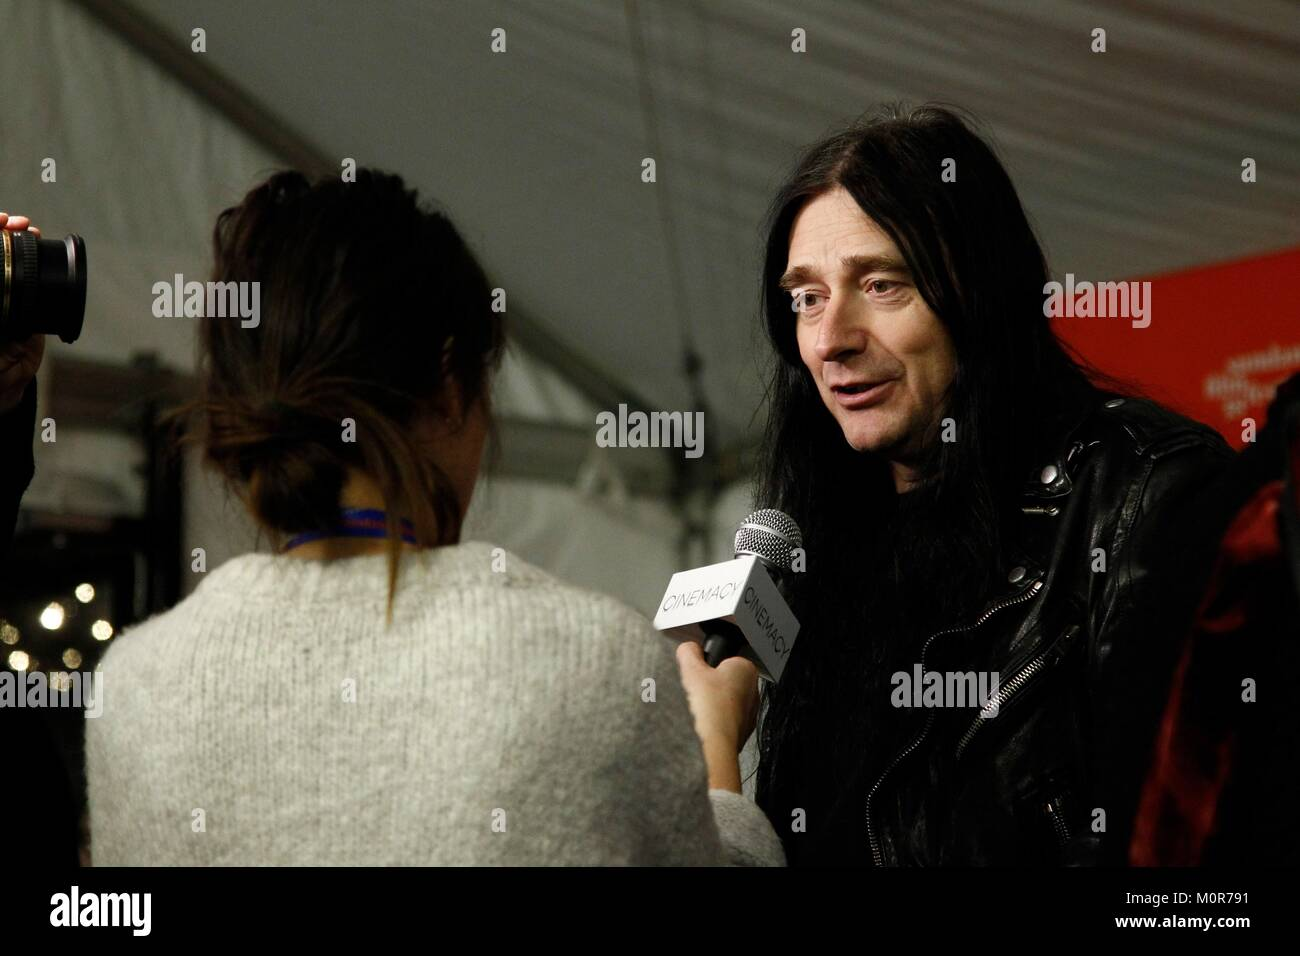 Park City, UT, USA. 23rd Jan, 2018. Jonas Akerlund at arrivals for LORDS OF CHAOS Premiere at Sundance Film Festival Stock Photo